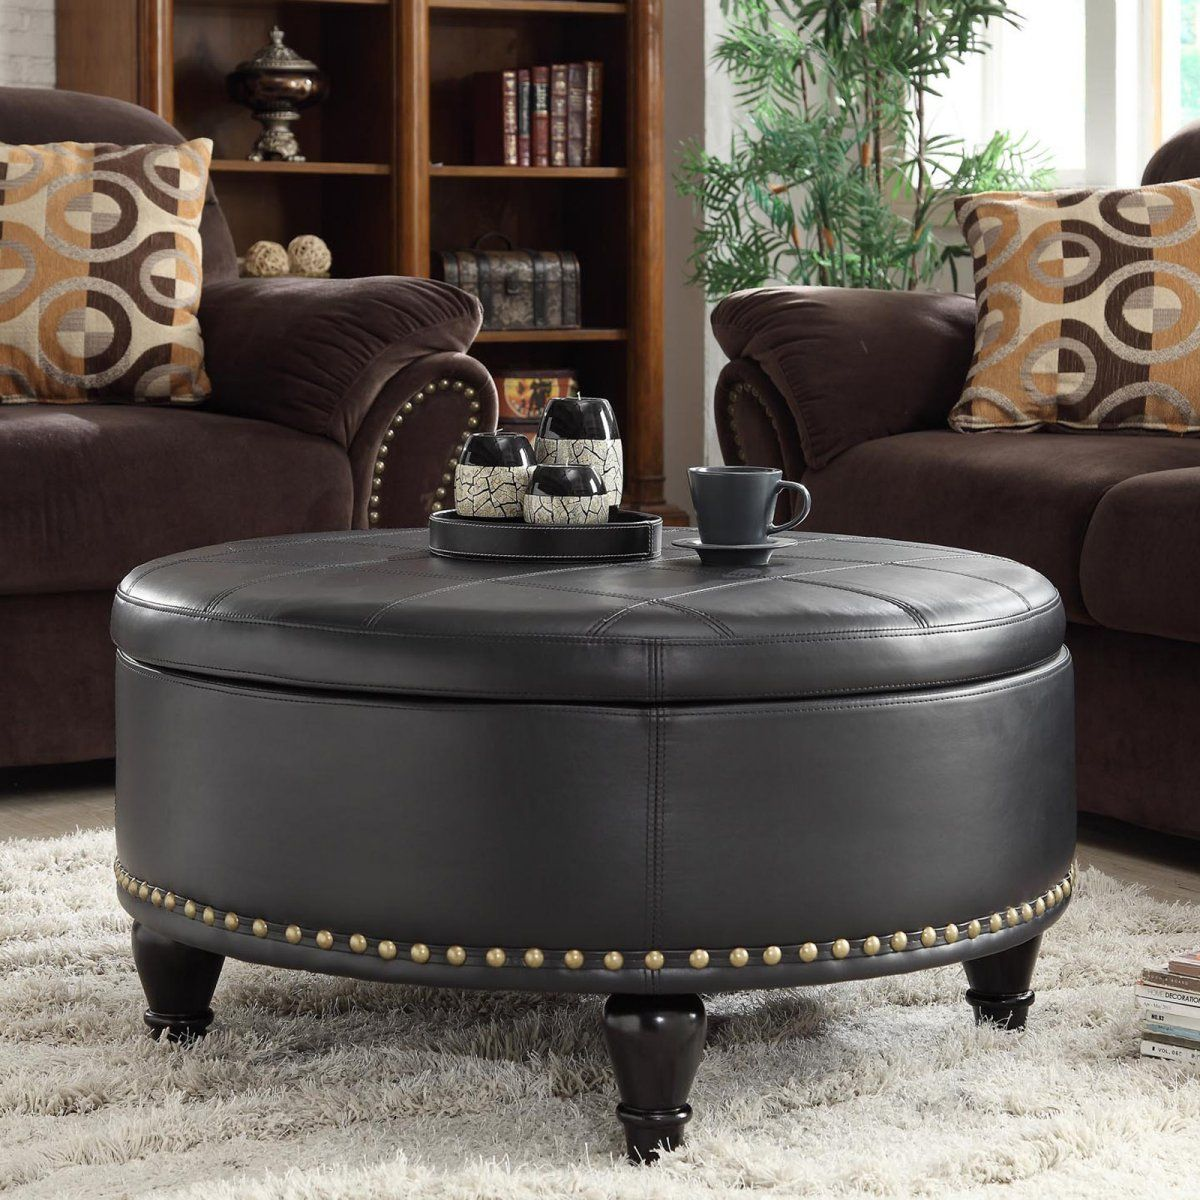 Chocolate brown sofa living room ideas combined with round leather ottoman coffee table storage Brown leather ottoman coffee table